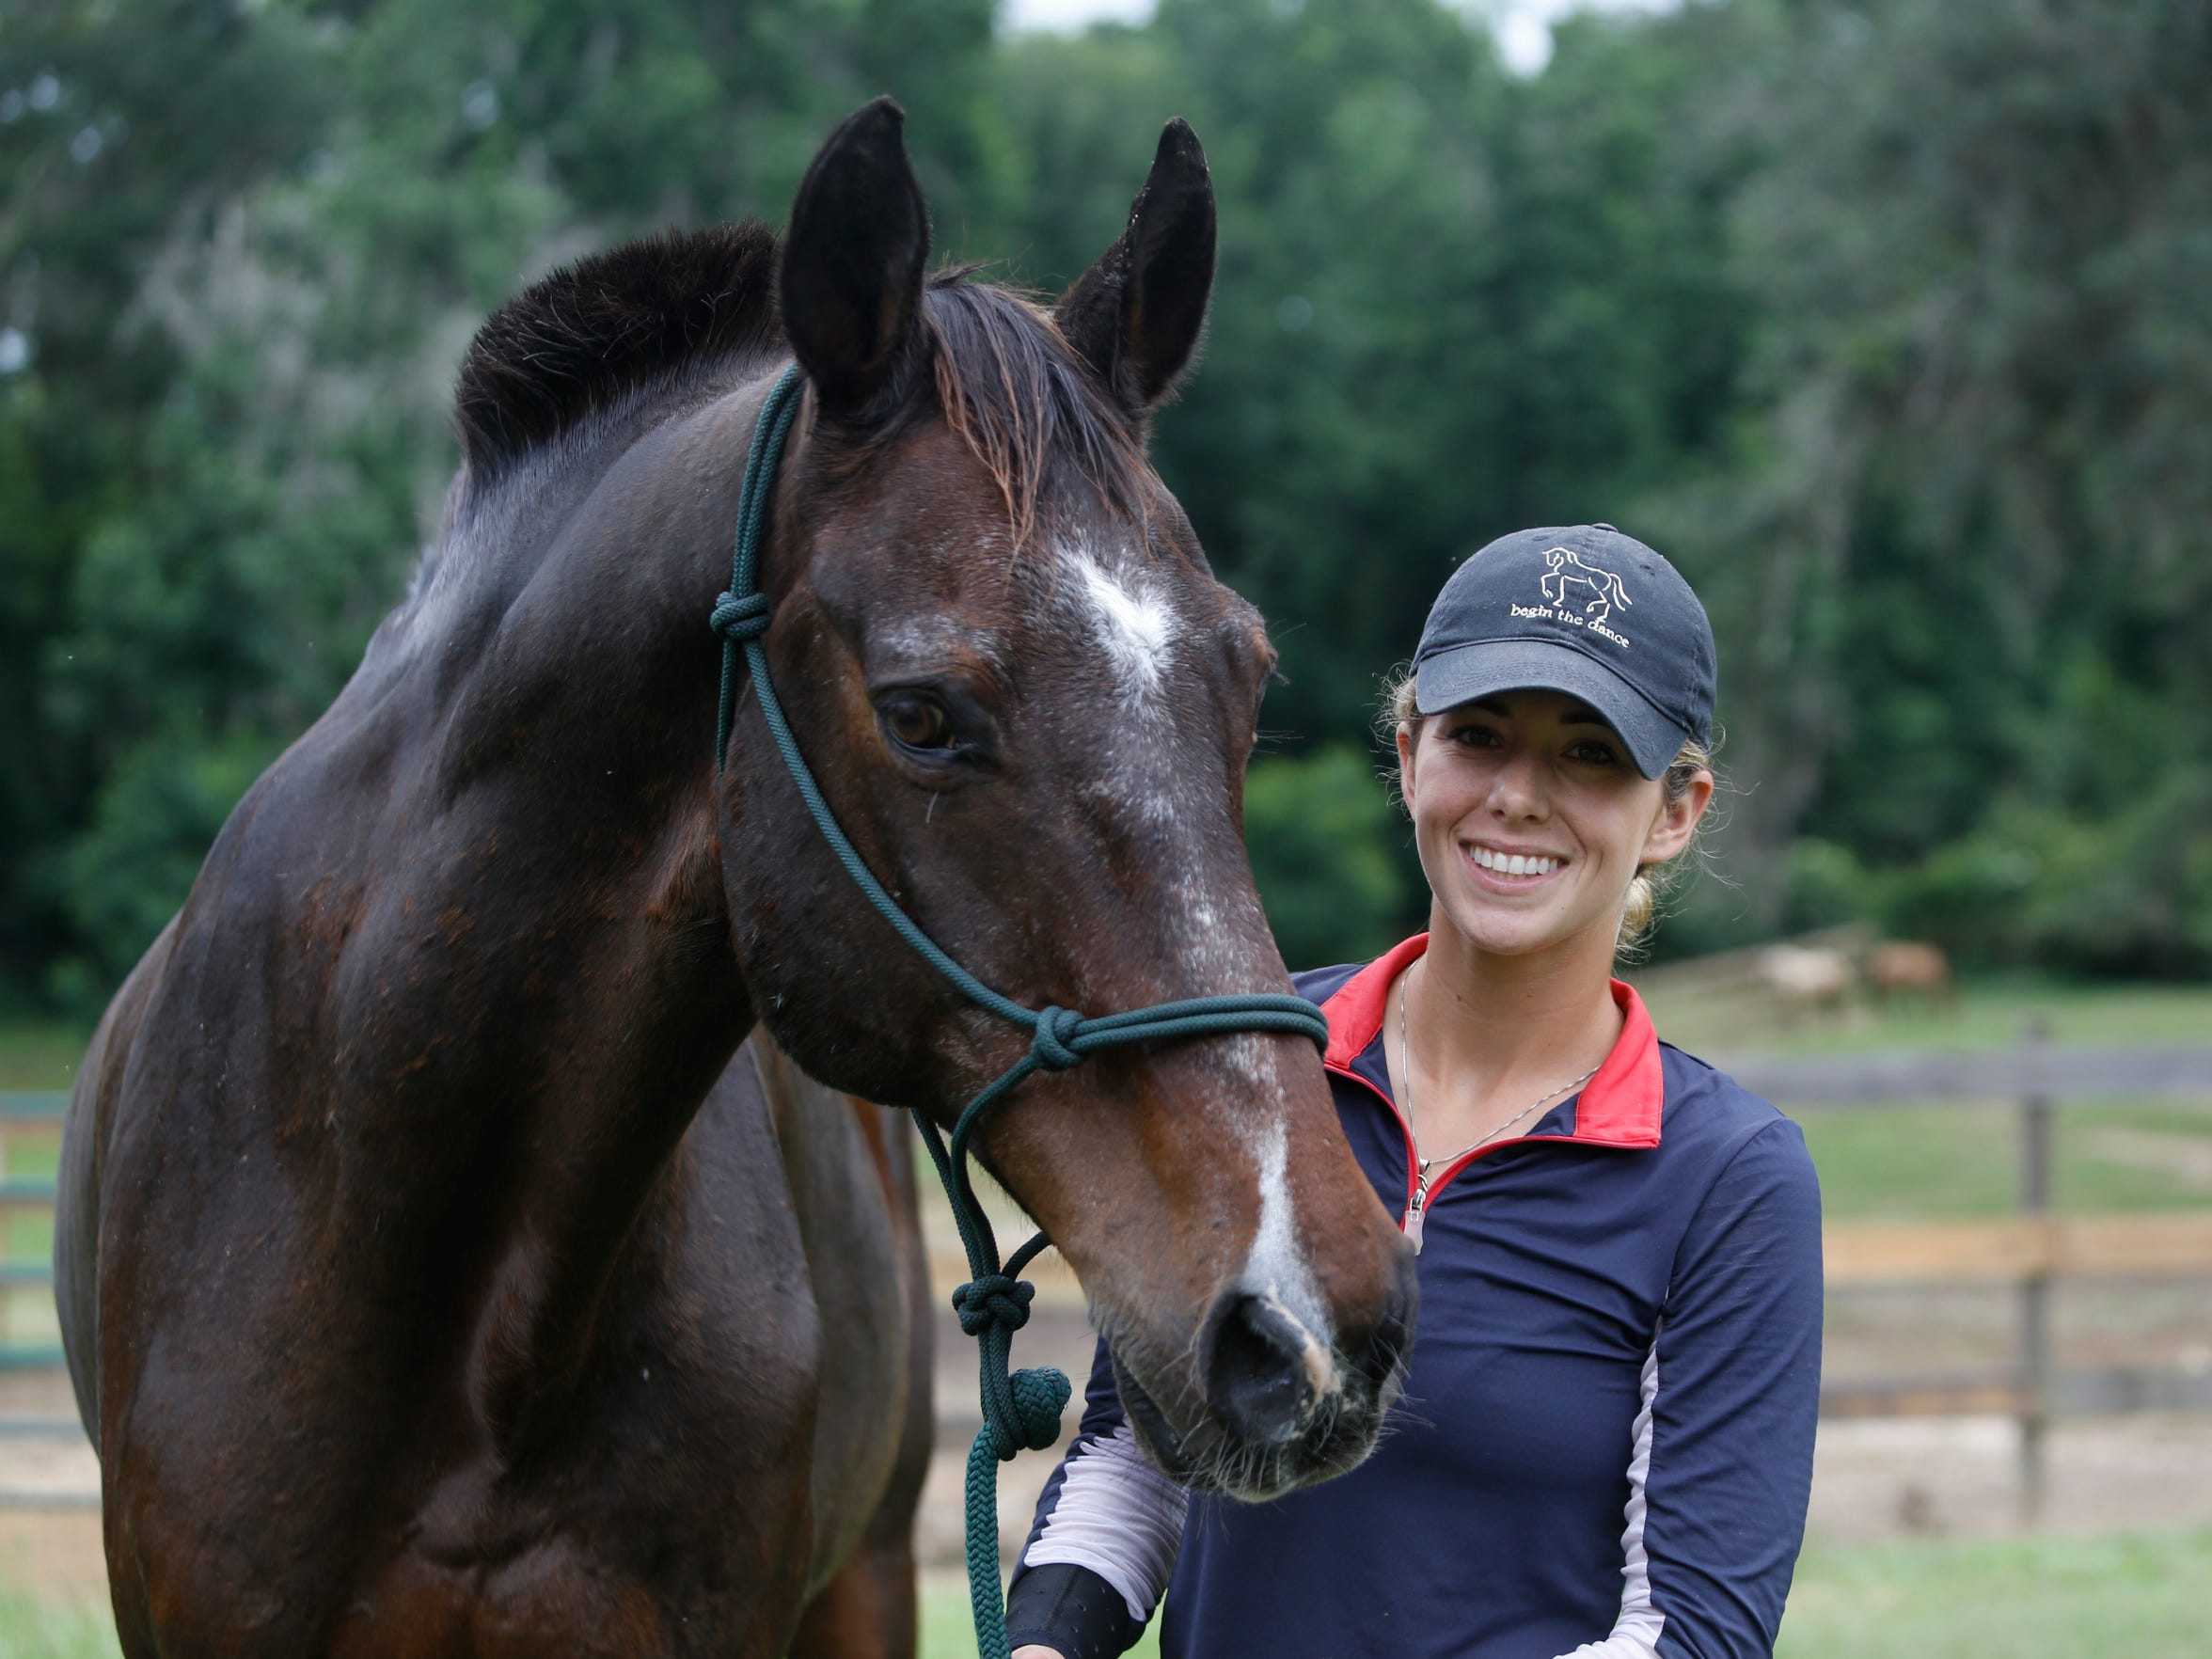 Assistant trainer Ashley Mancuso poses with her horse